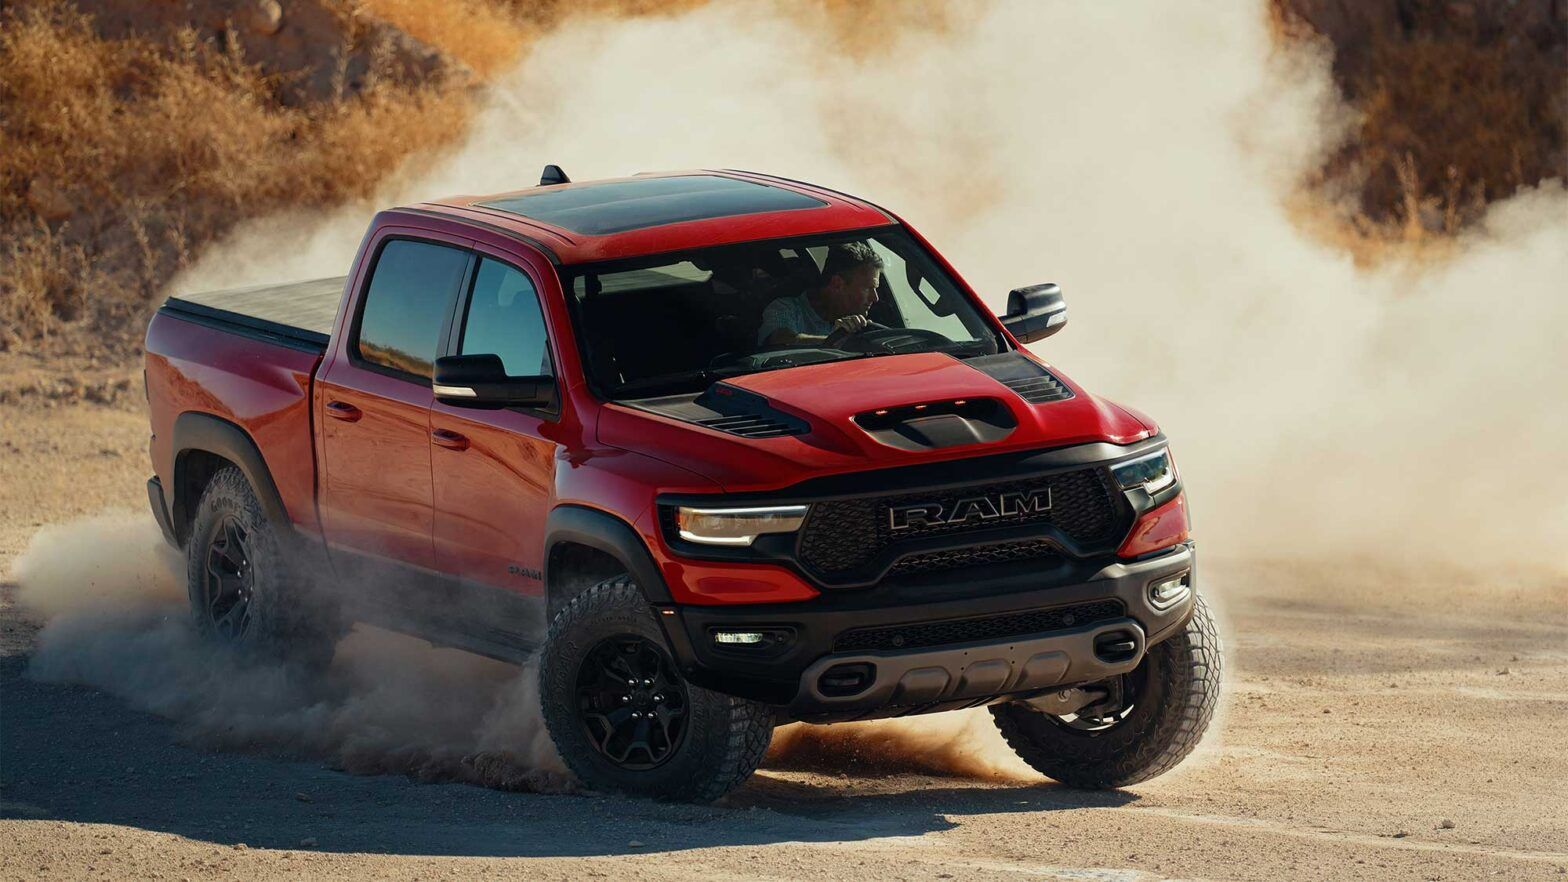 The New 2021 Ram 1500 Trx Truck Is A Supertruck That Wipes 0 60 In 4 5 Seconds Shouts In 2020 Trx Hellcat Ram 1500